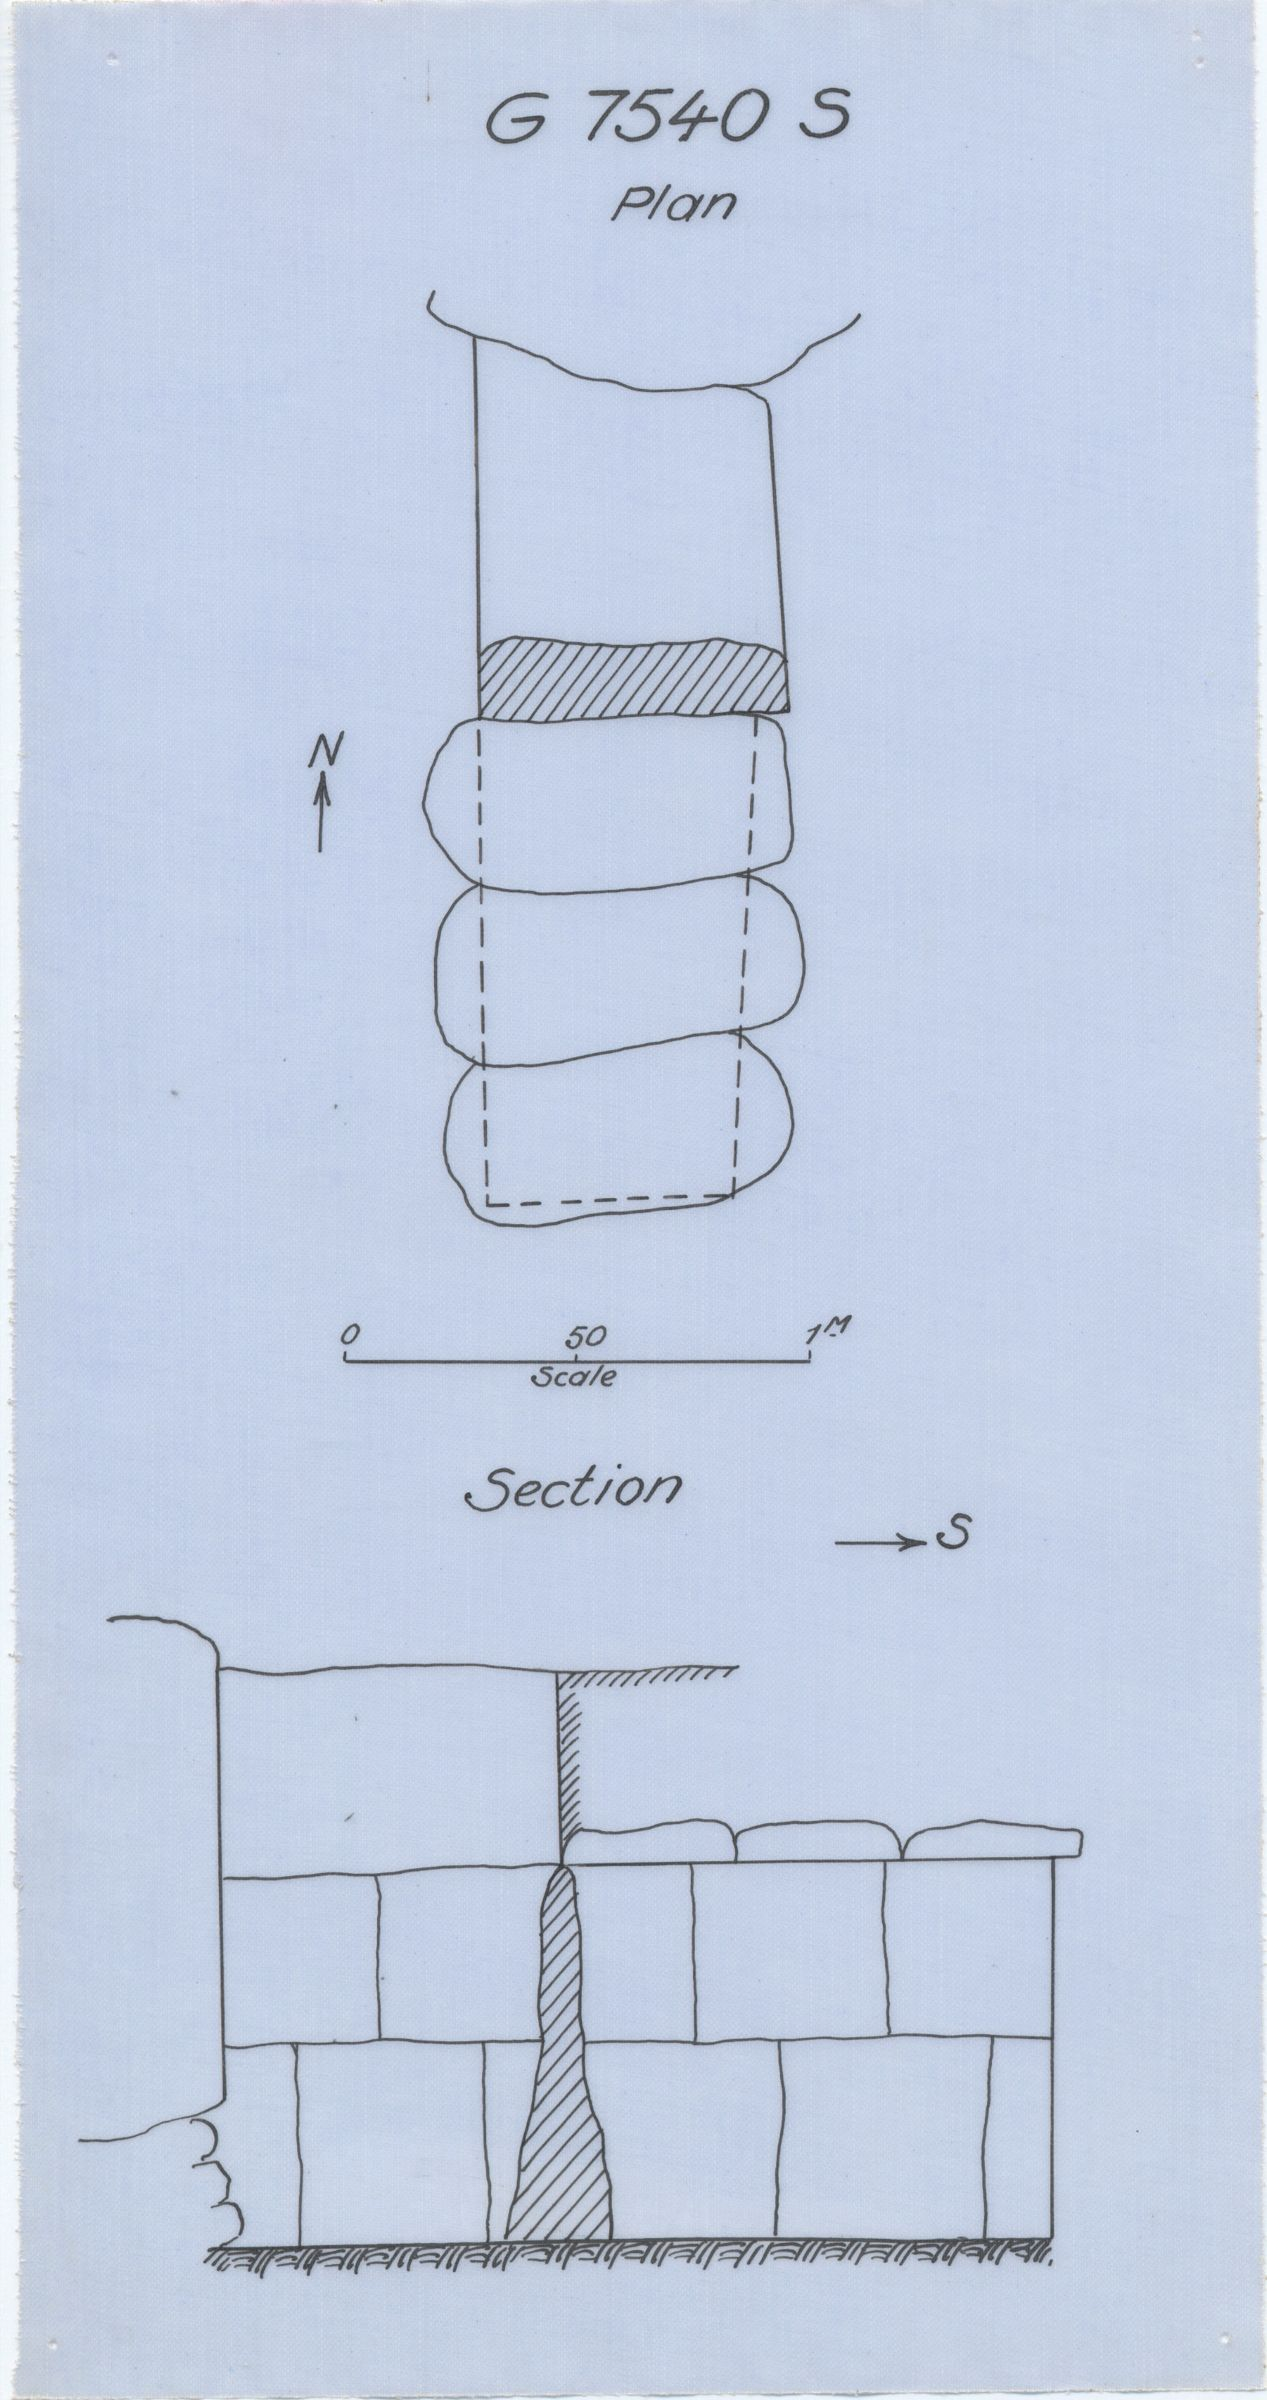 Maps and plans: G 7530-7540: G 7540, Shaft S